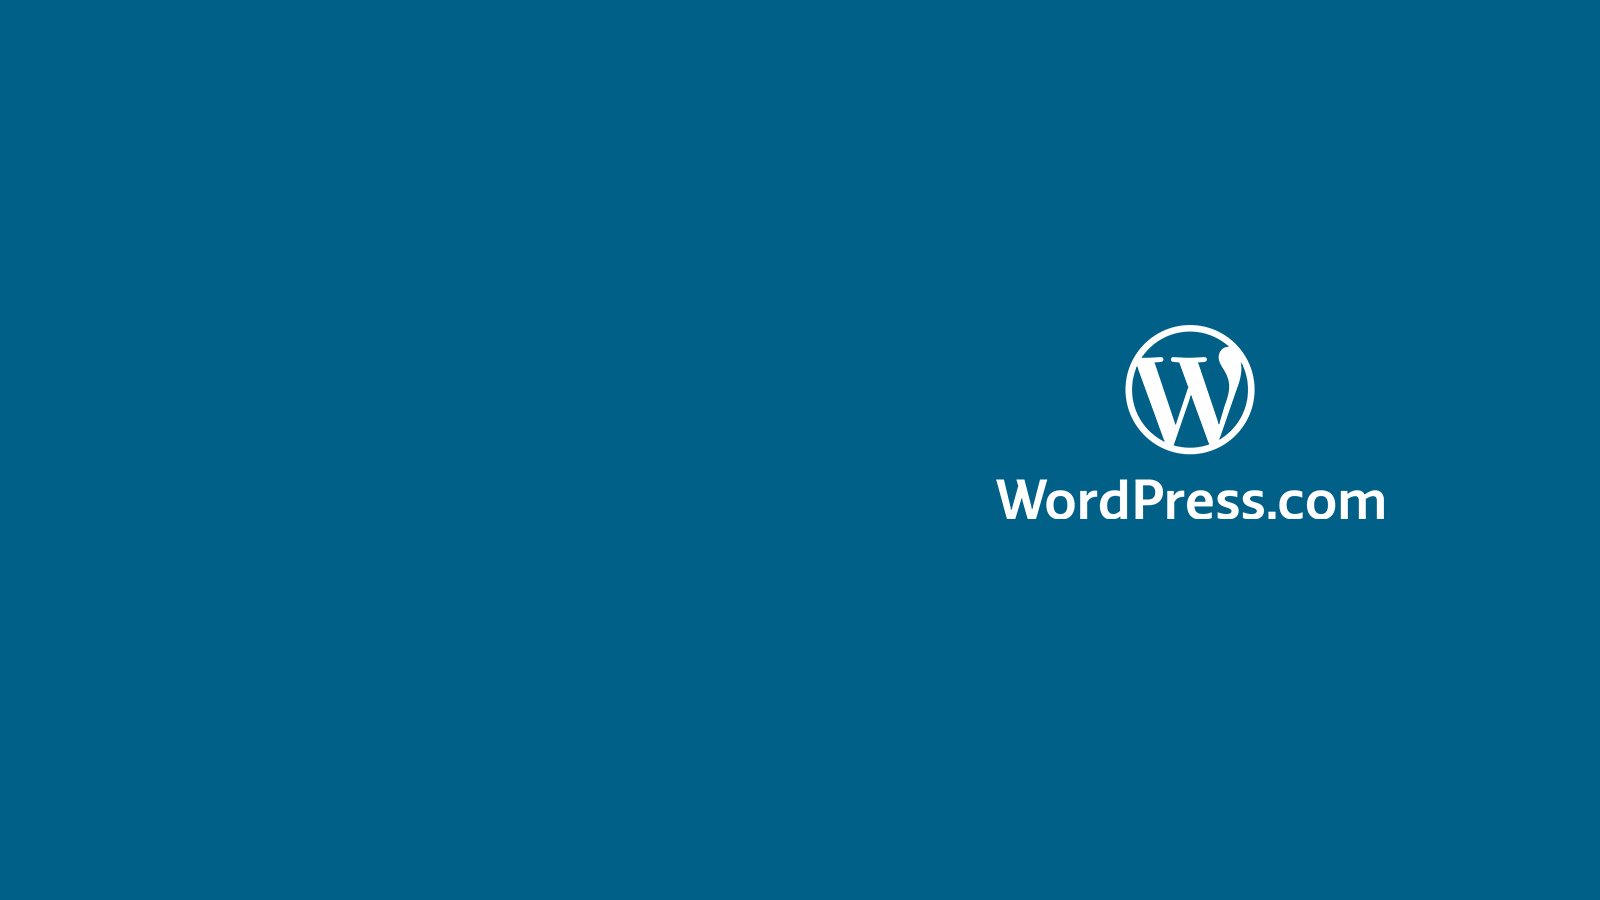 WordPress.com logo.